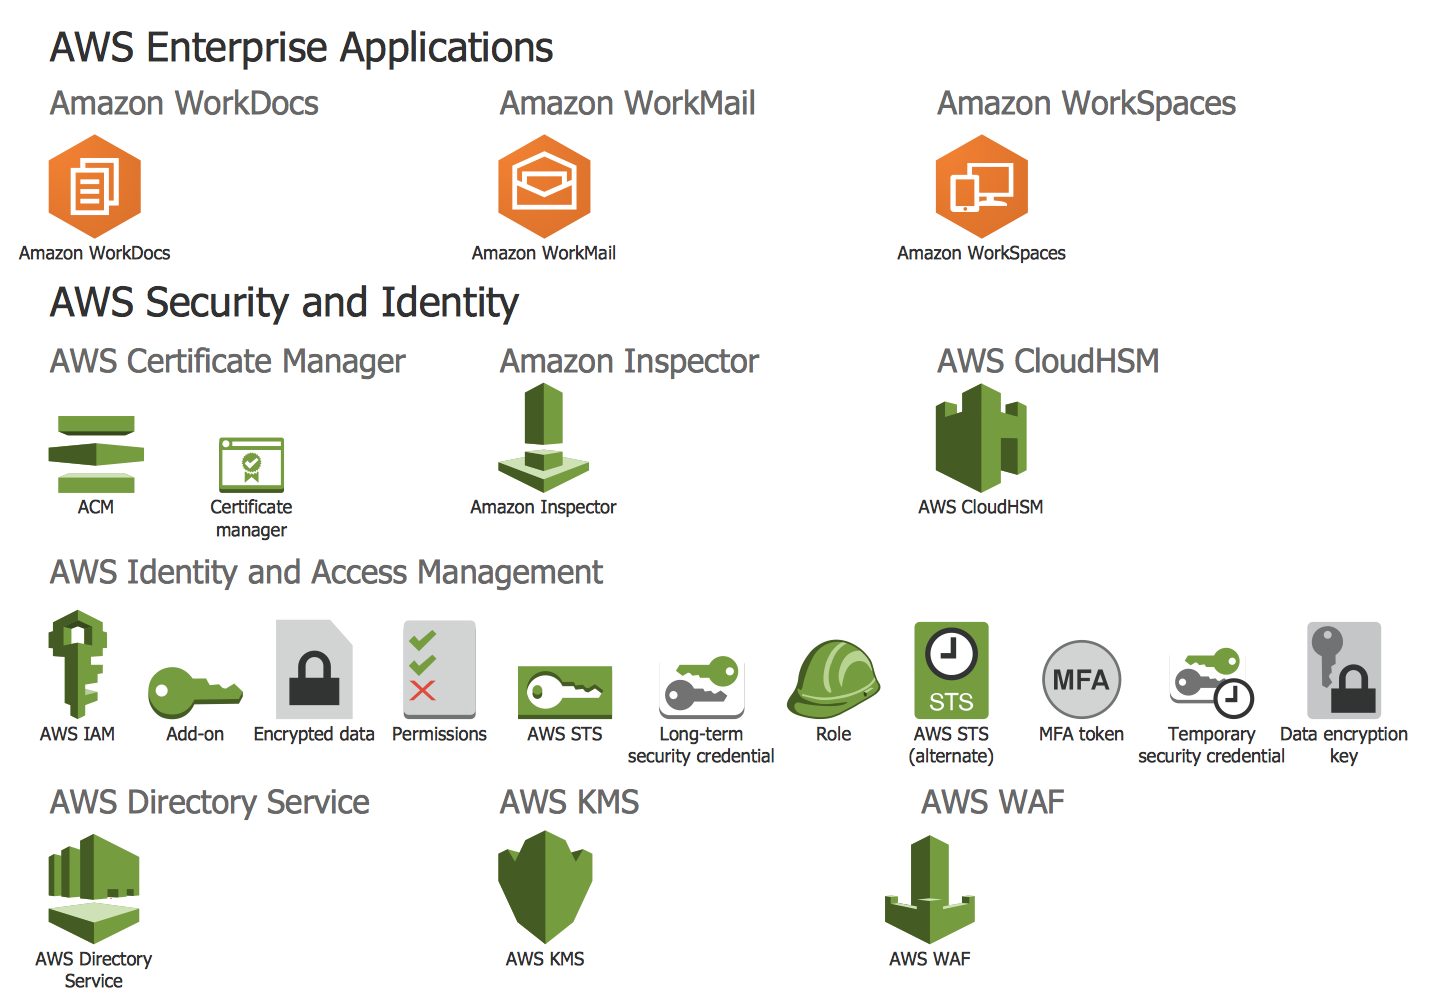 Design Elements — AWS Enterprise Applications, AWS Security and Identity